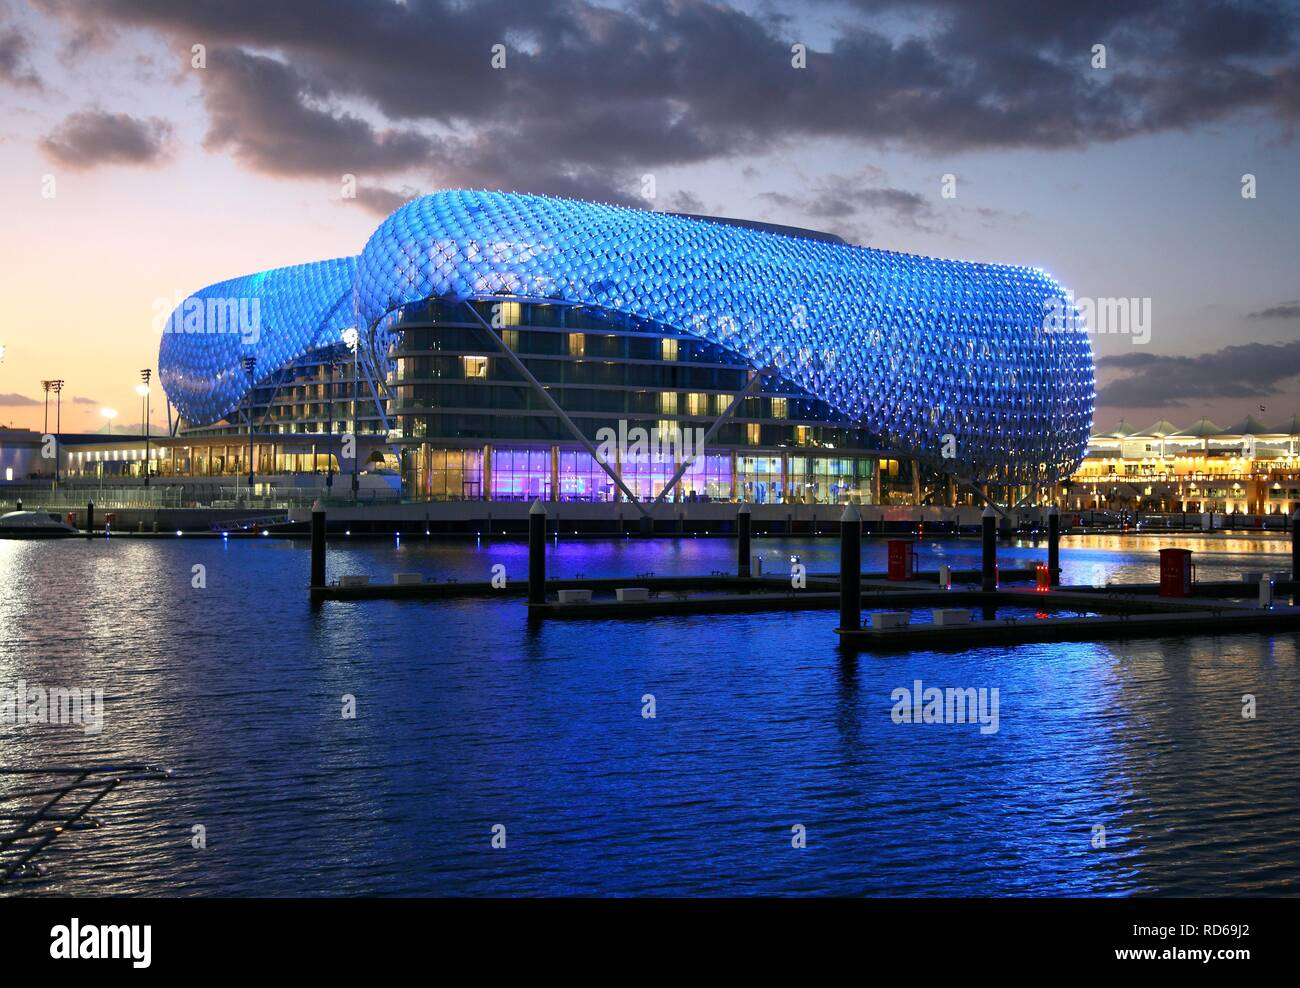 Yas Hotel on Yas Island, futuristic luxury hotel in the middle of the Formula 1 race track of Abu Dhab at dusk - Stock Image